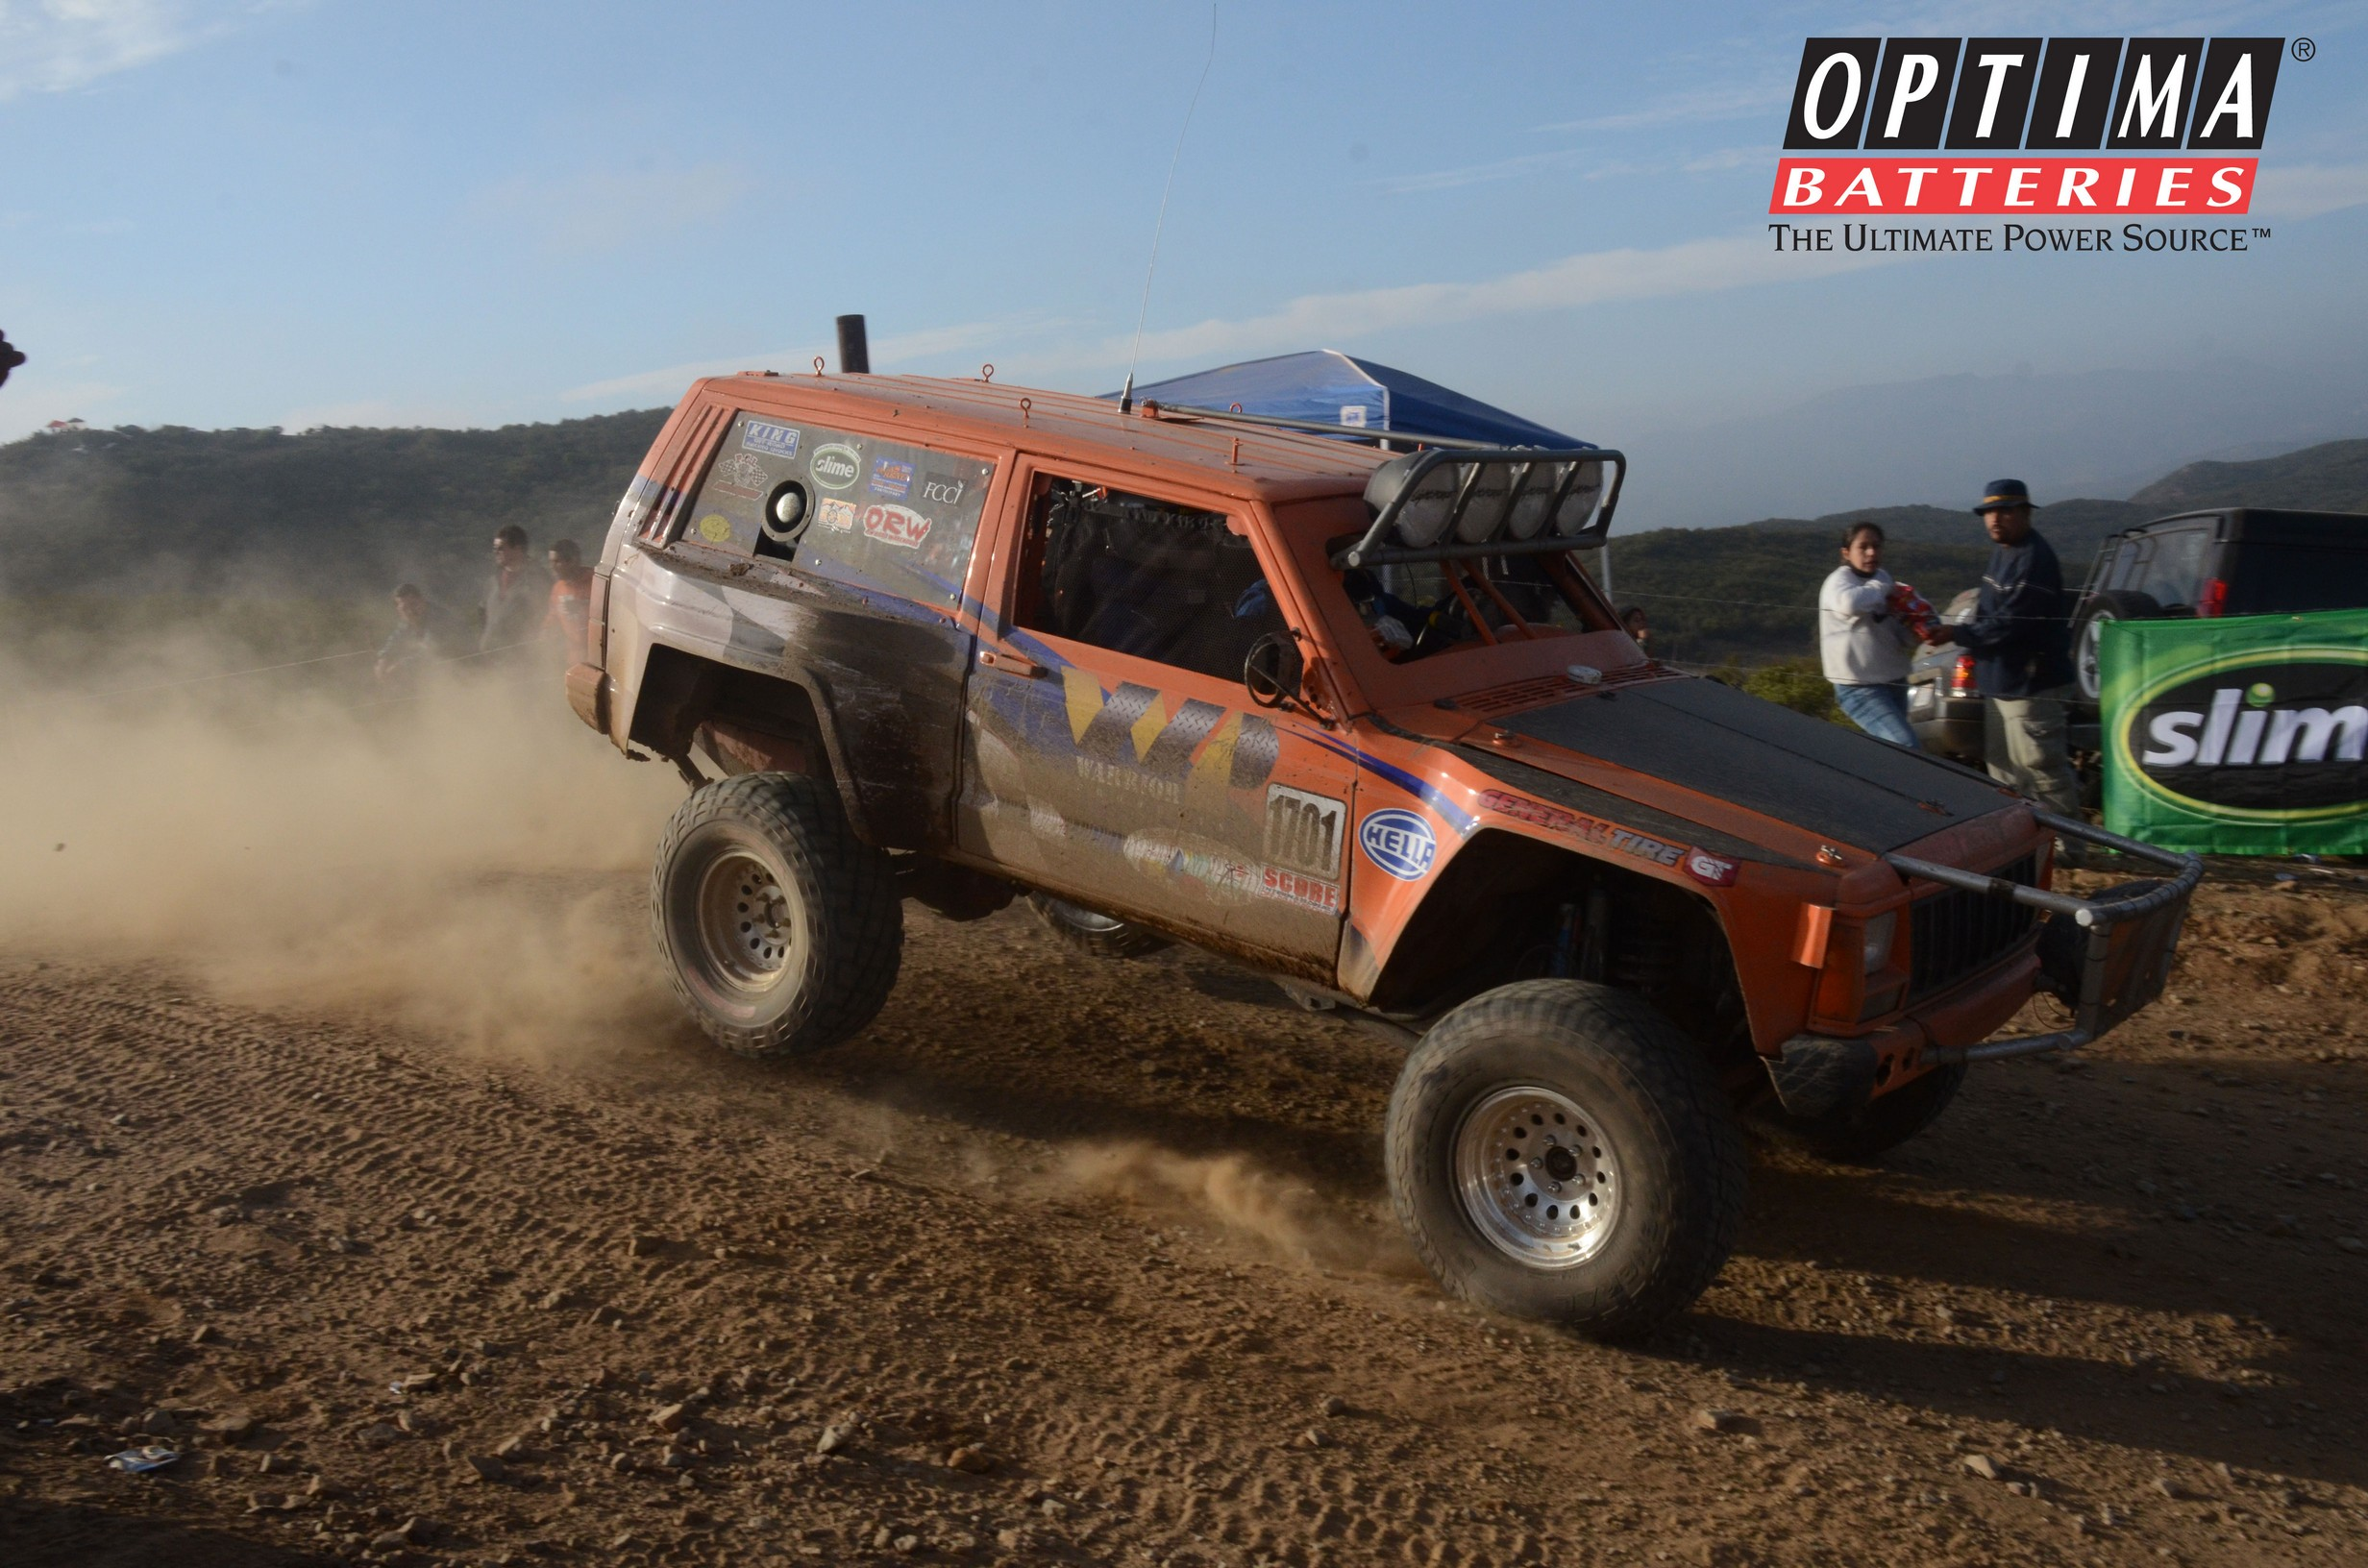 OPTIMA-powers-the-Warrior-Products-JeepSpeed-entry-in-the-Best-in-the-Desert-Off-Road-Series-as-wel-wallpaper-wp5808438